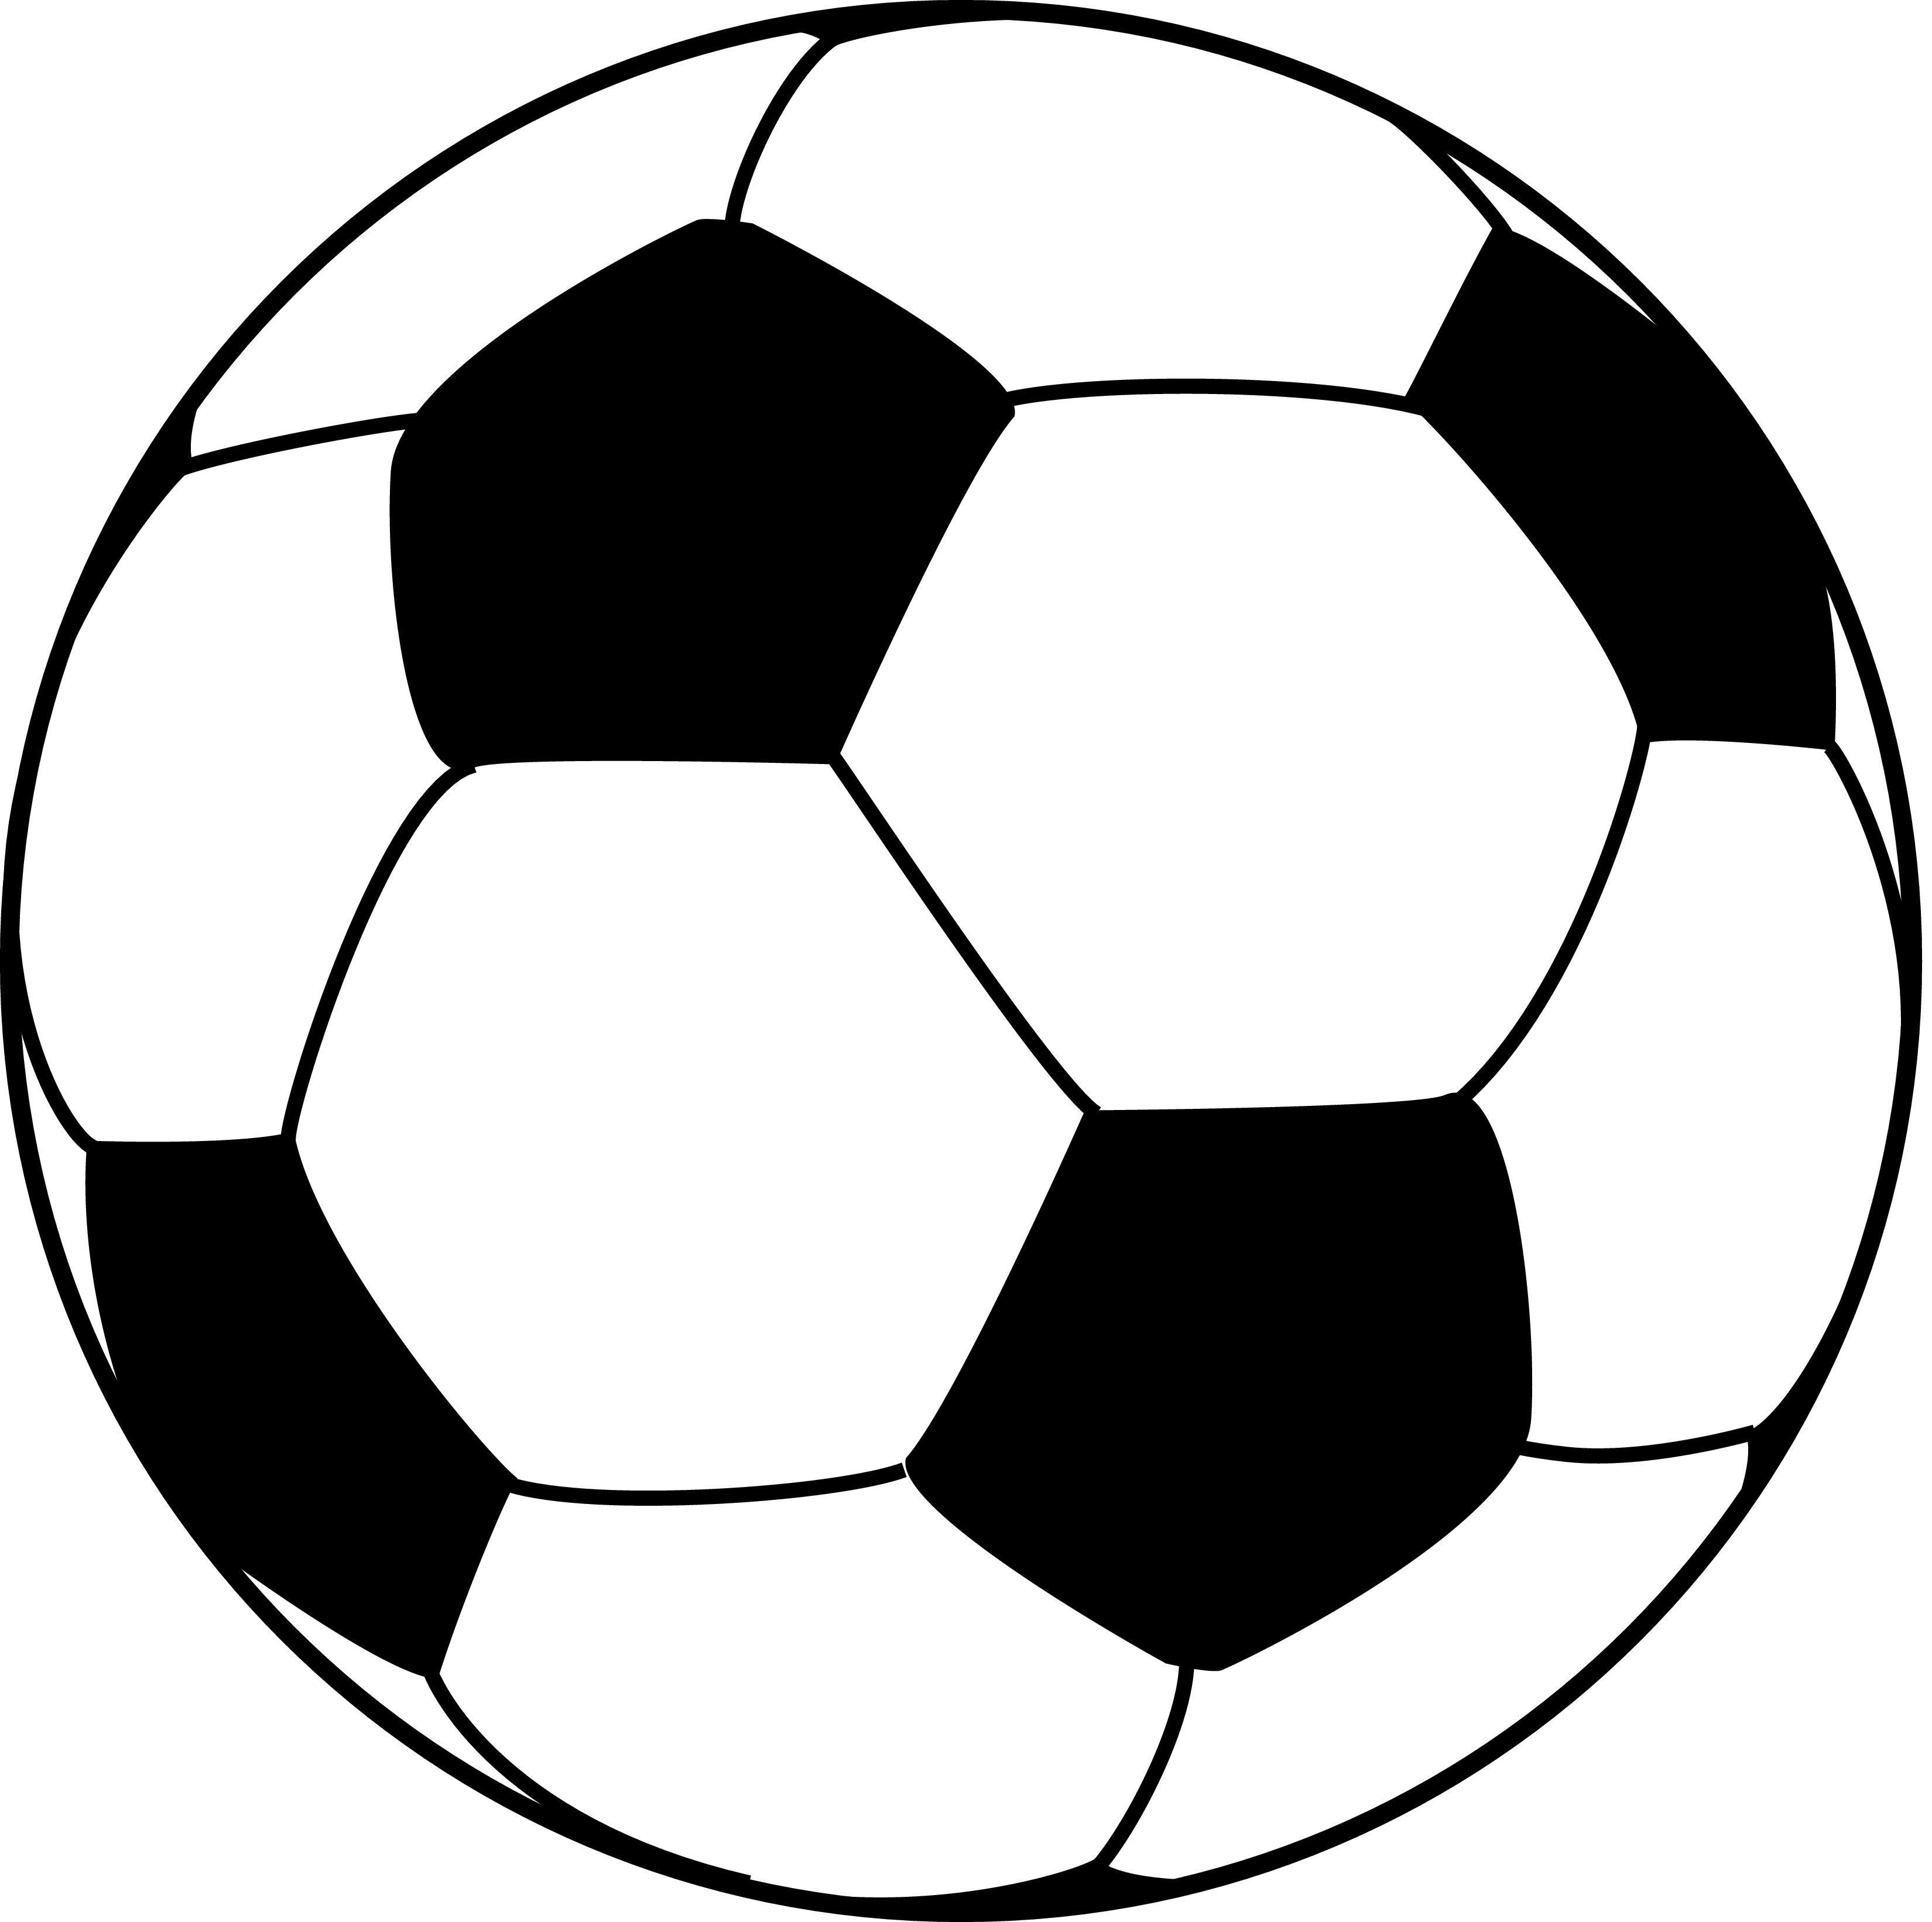 Irresistible image pertaining to printable soccer ball template